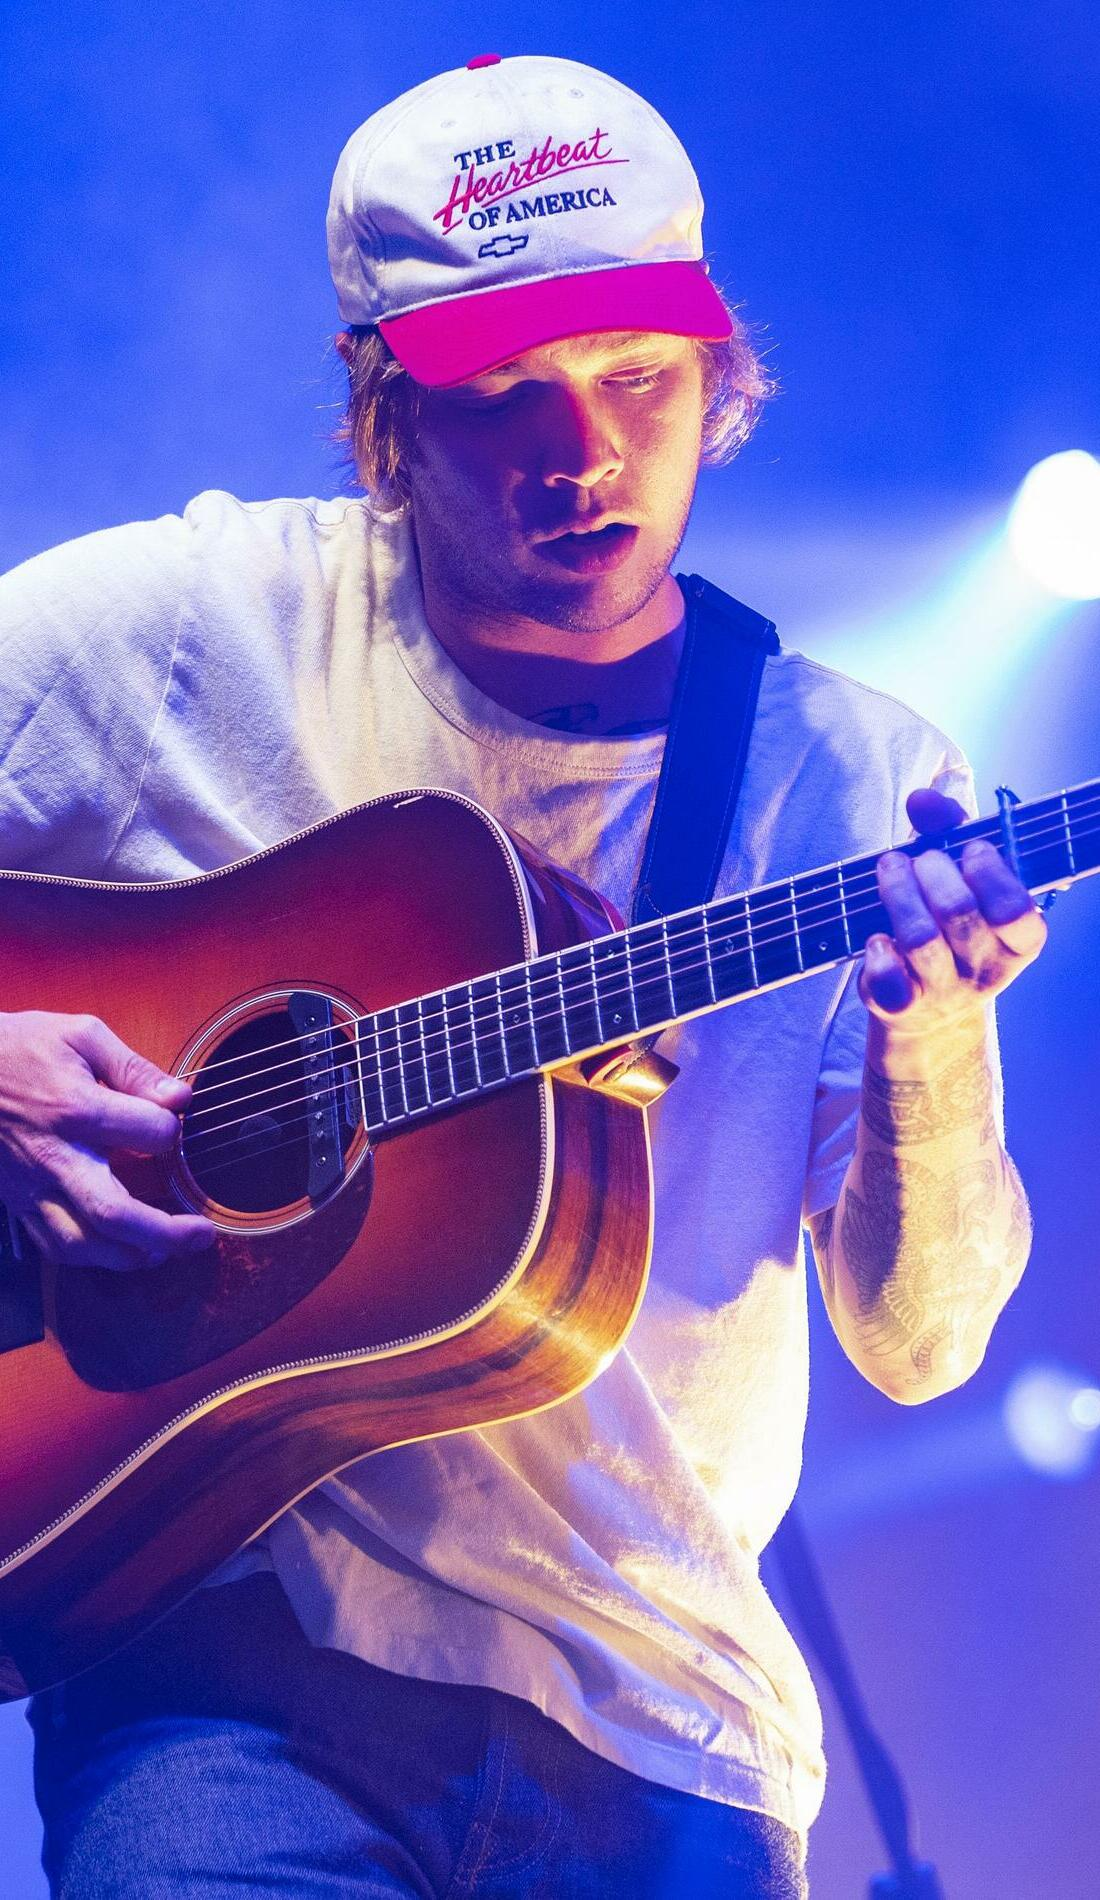 A Billy Strings live event